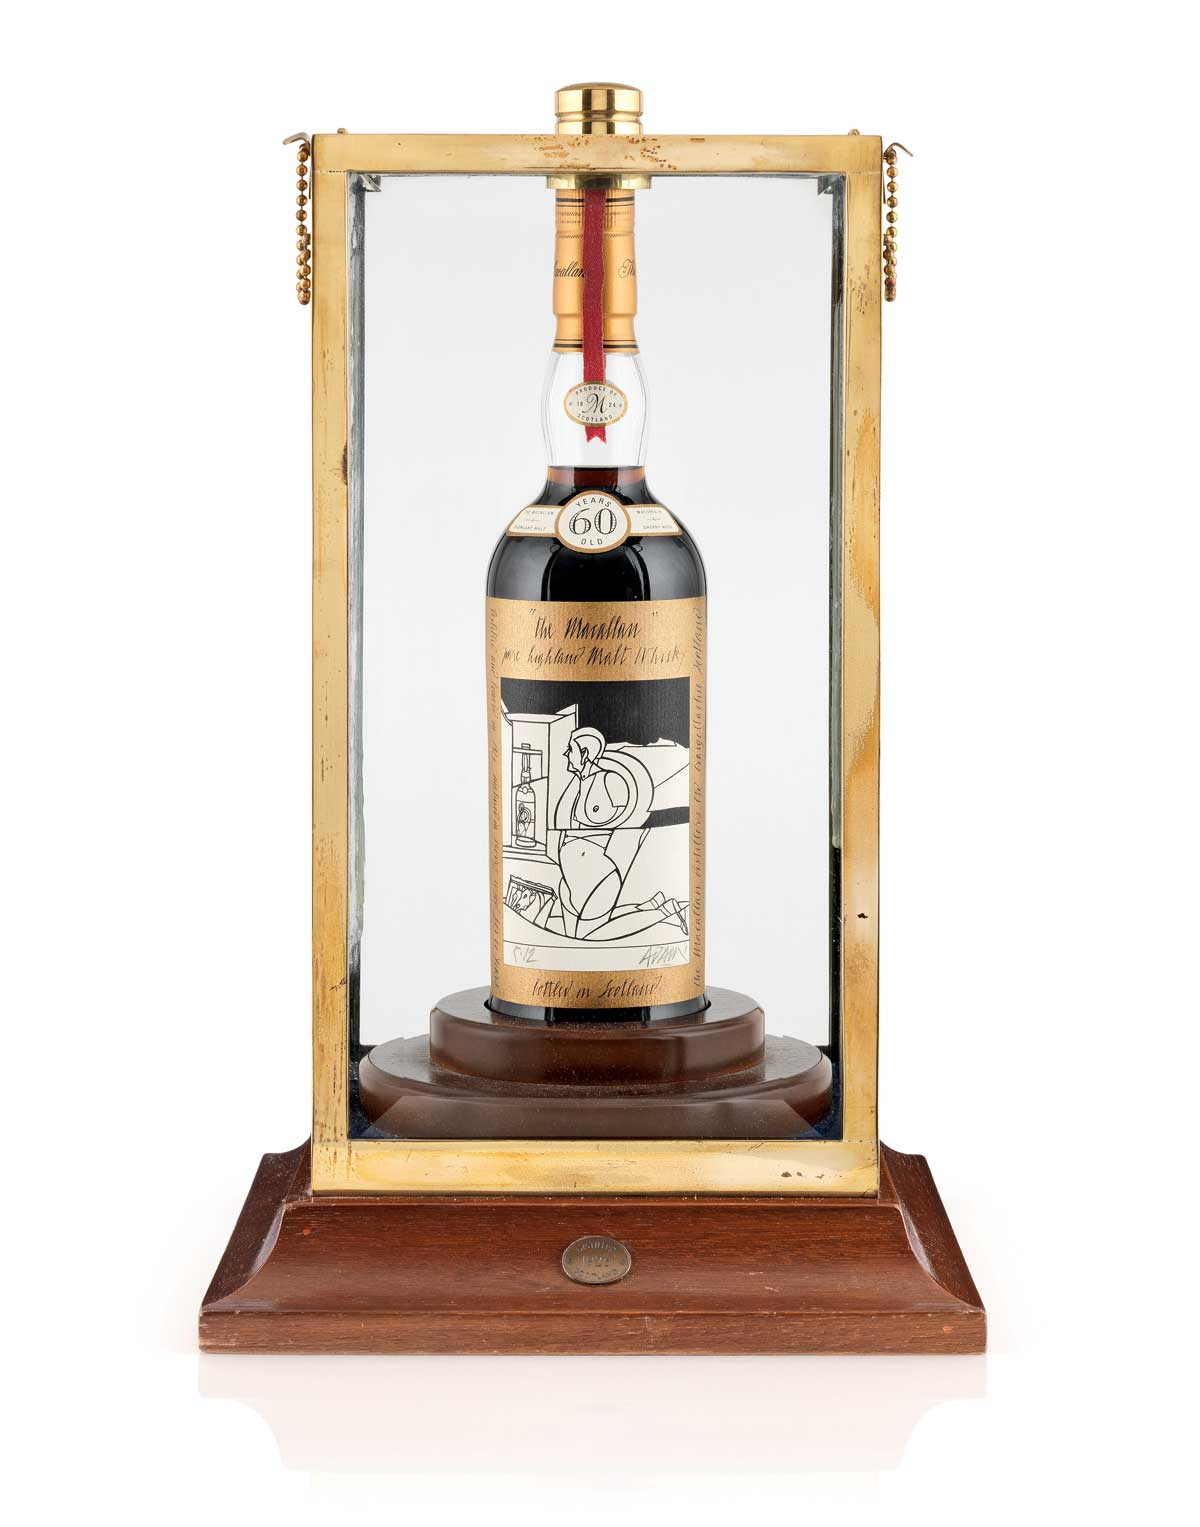 https://www.artsandcollections.com/wp-content/uploads/2018/10/The-Macallan-Valerio-Adami-60-year-old-1926-image-i.jpg